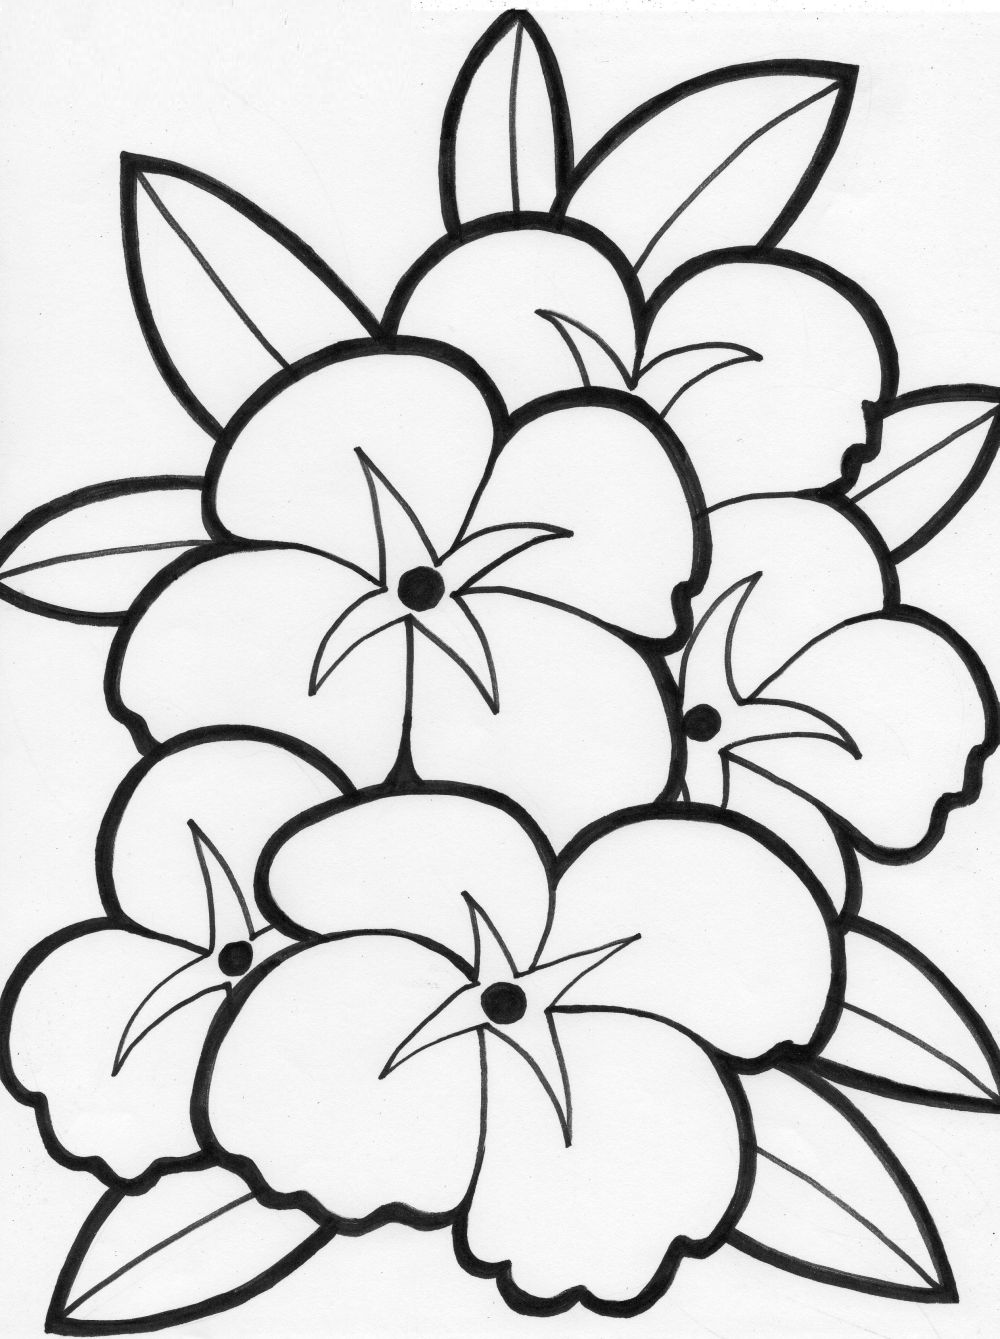 coloring pages flowers printable free printable flower coloring pages for kids best flowers printable pages coloring